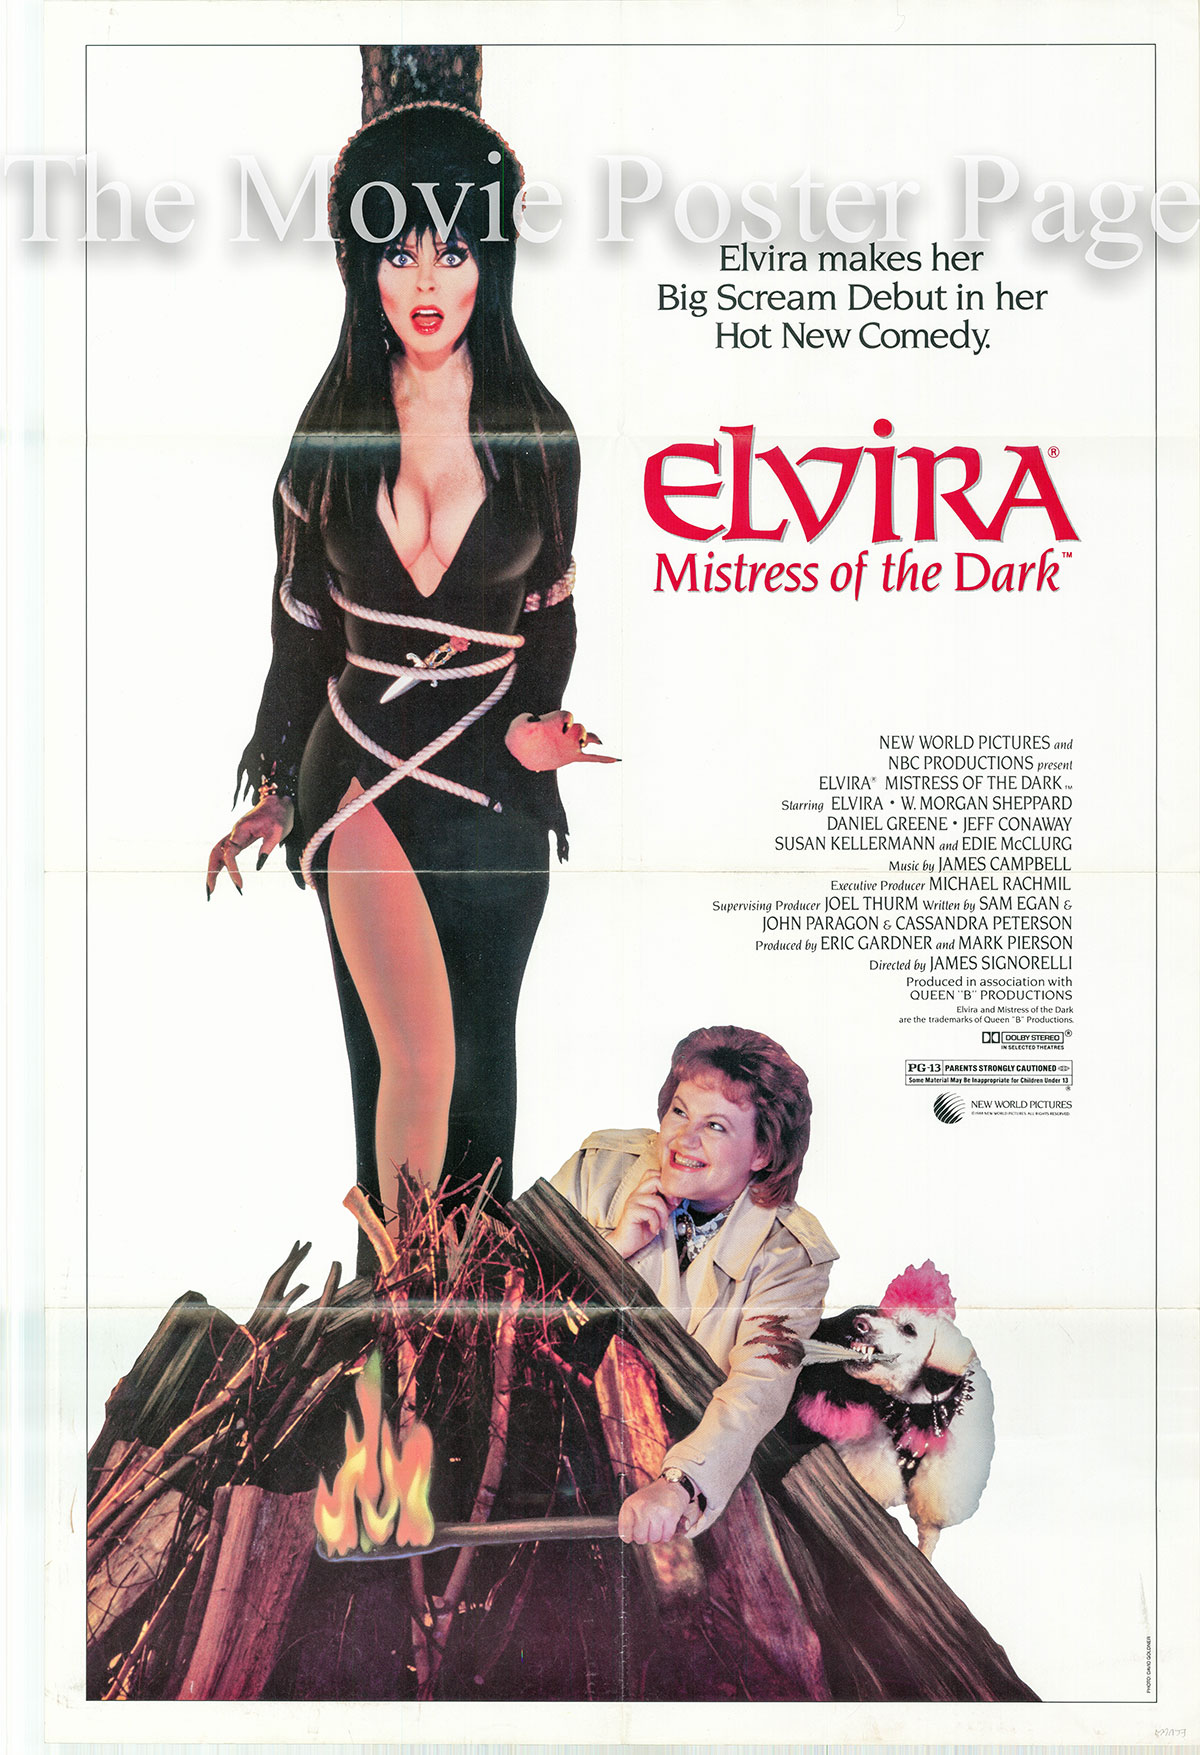 Pictured is the US one-sheet promotional poster for the 1988 James Signorelli film Elvira Mistress of the Dark starring Cassandra Peterson.